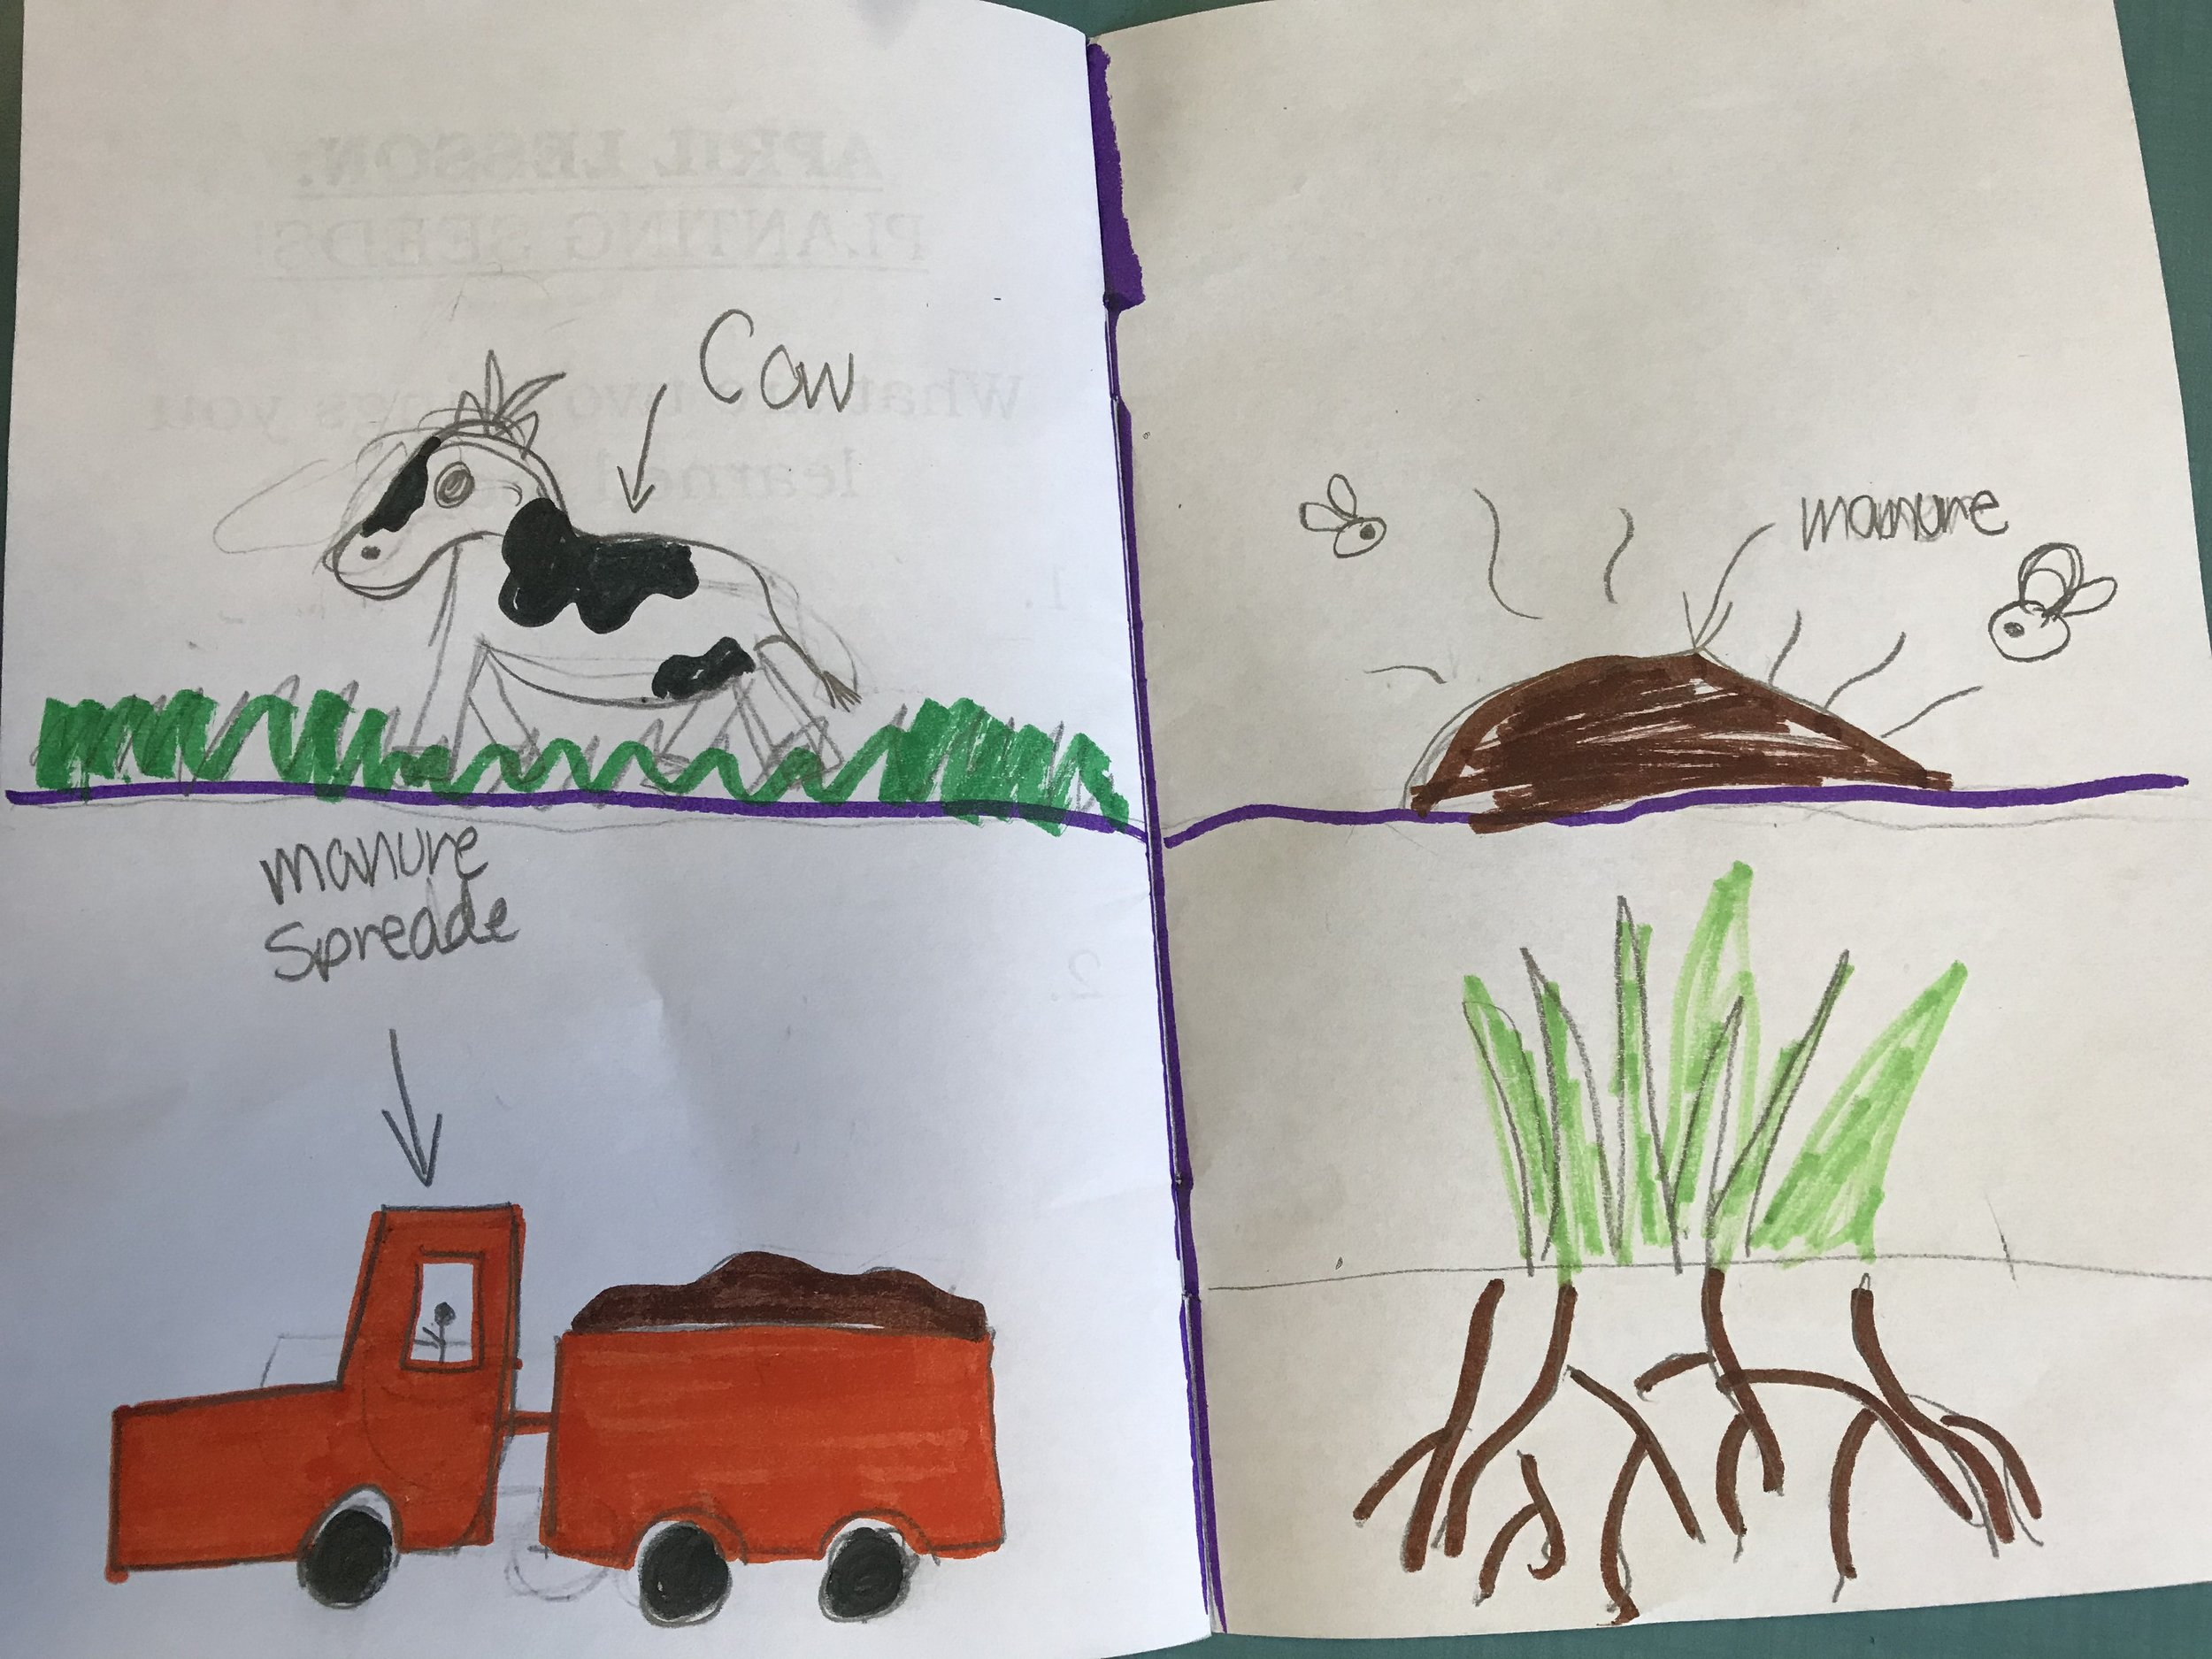 Diagram of grass: cow eats the grass, grass gets digested into manure (which means the kids get to say poop, their favorite!) and the manure gets spread on the fields to grow food and possibly more grass!